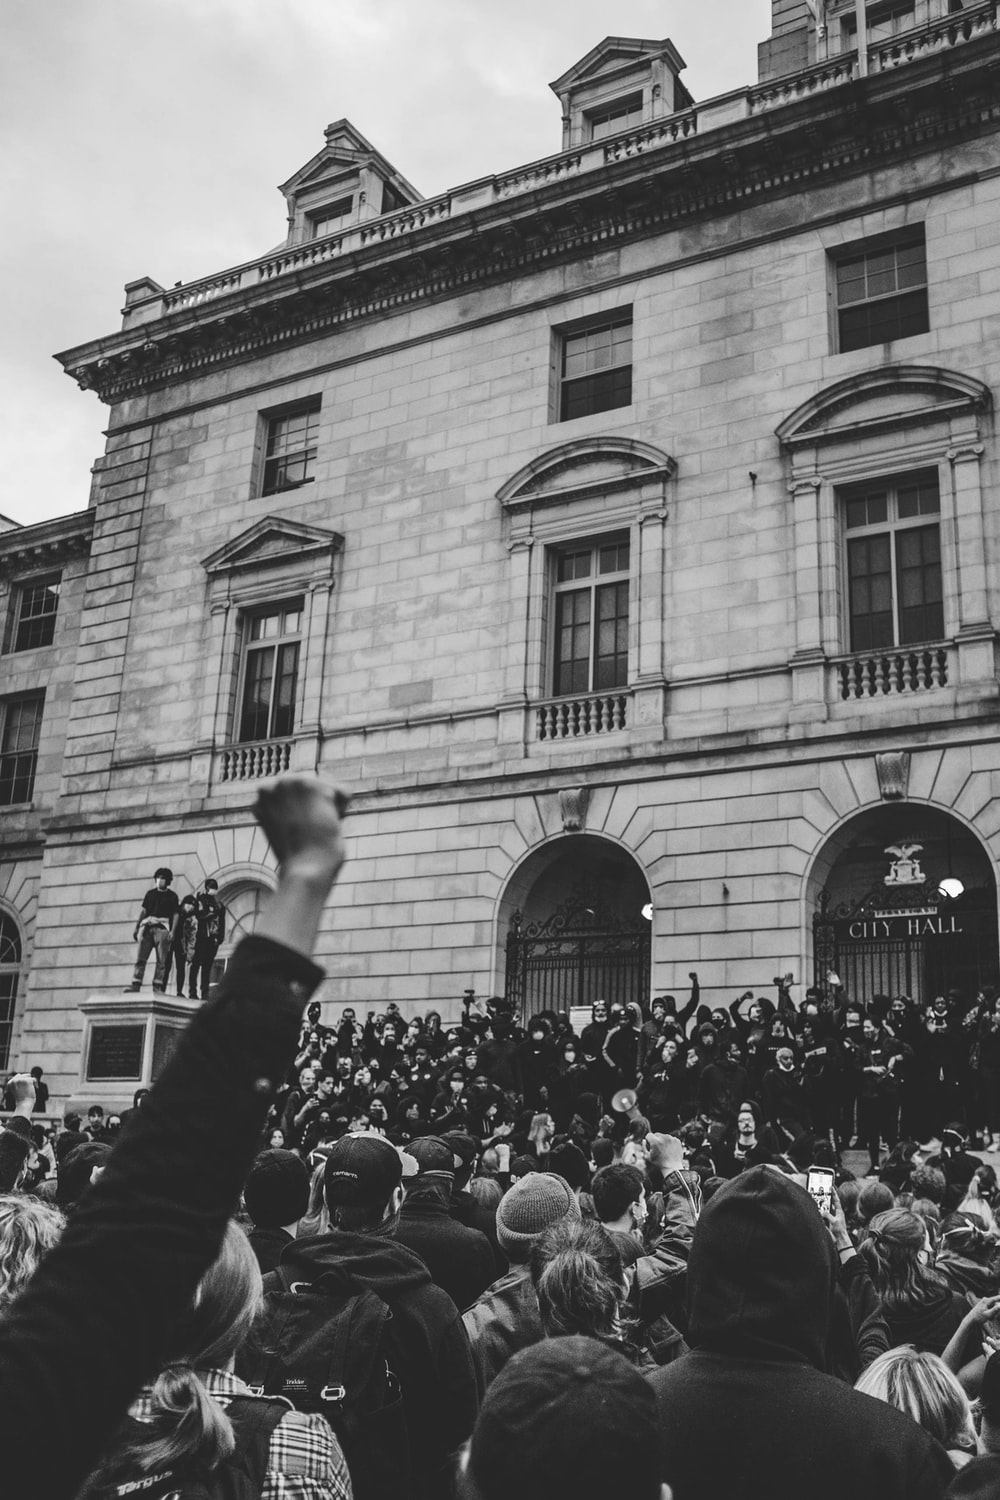 grayscale photo of people in front of building